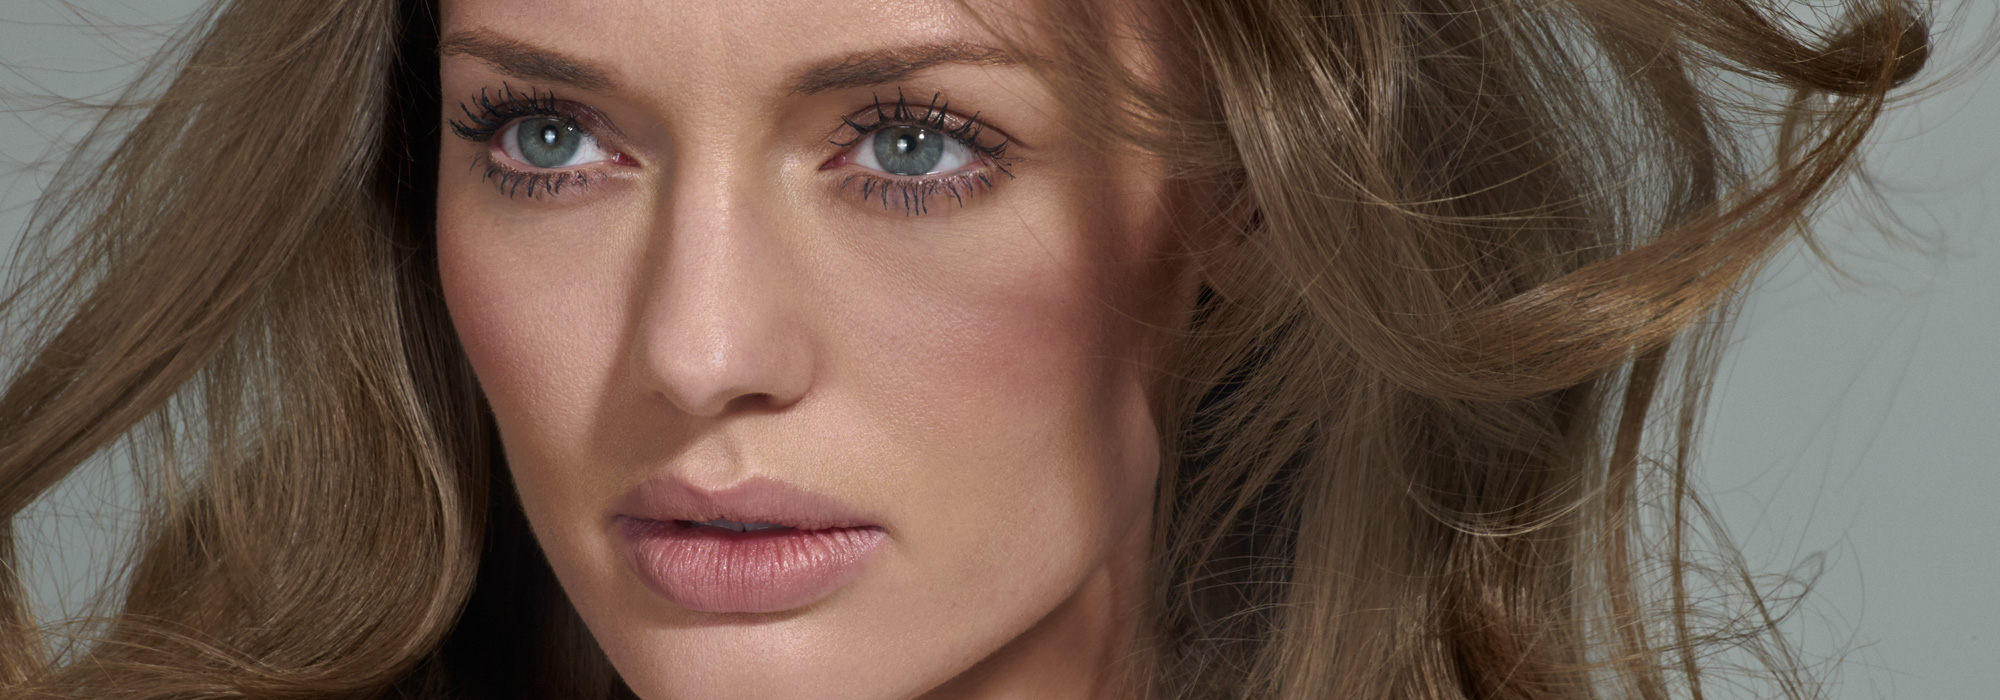 Laura Haddock Wallpaper for Facebook Full HD Pictures 2000x700